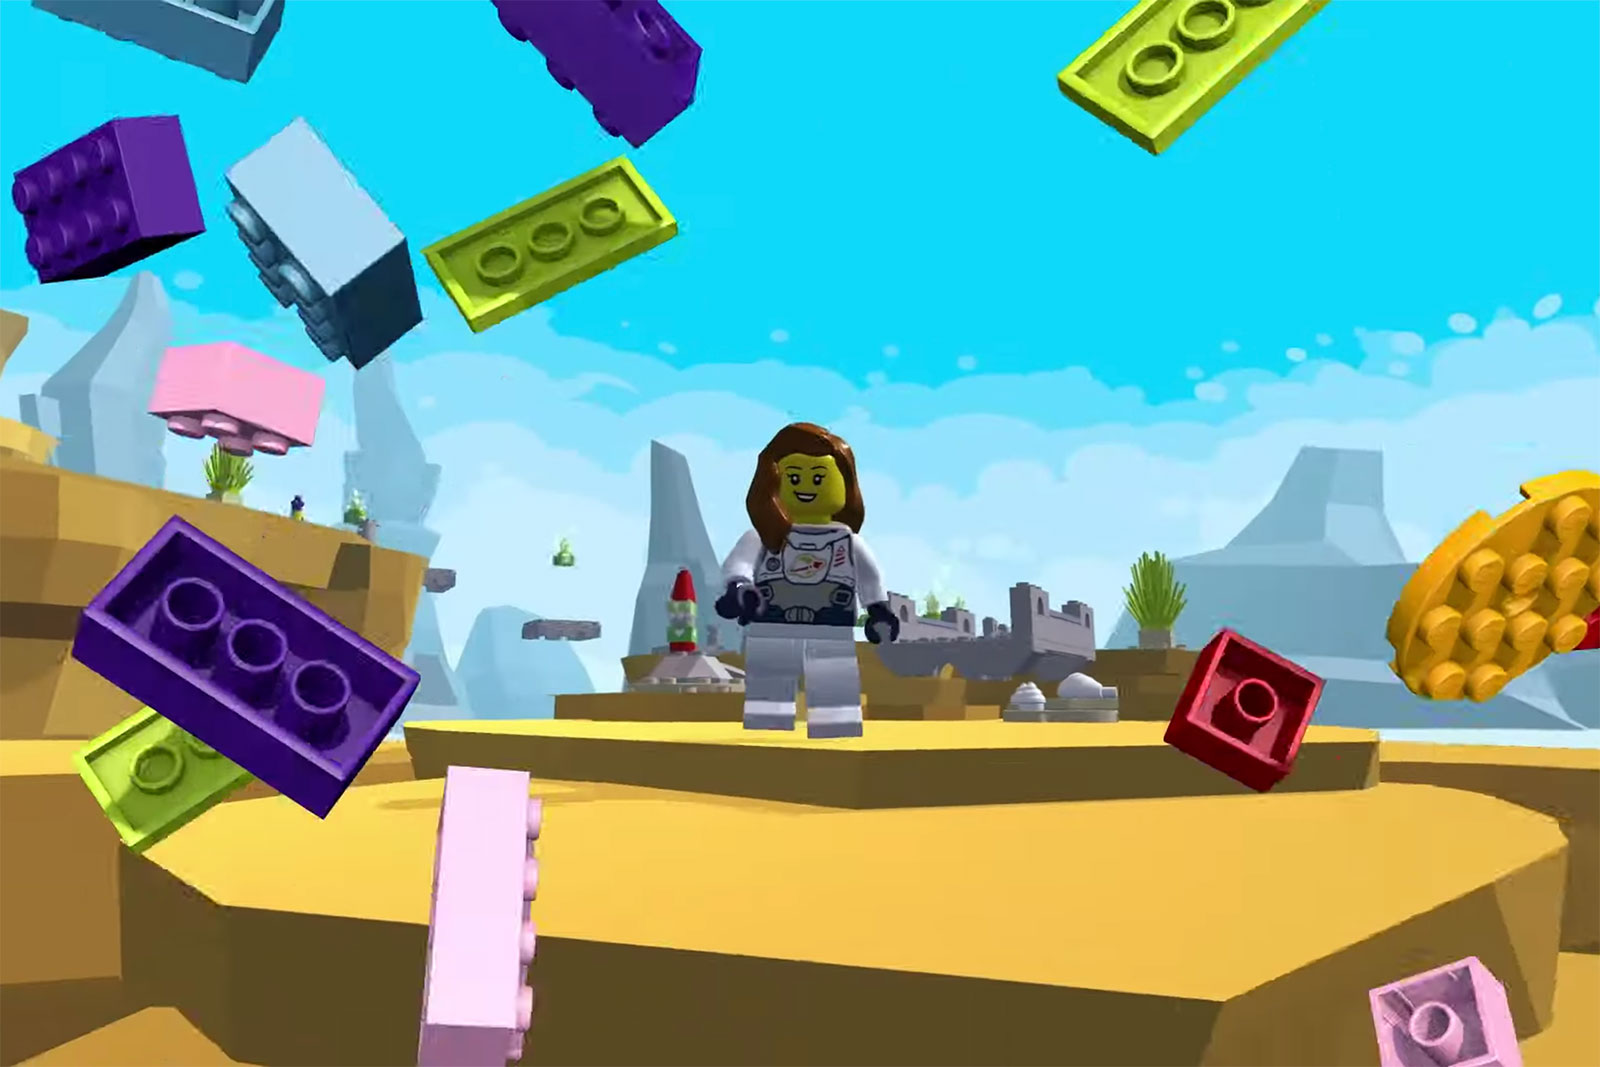 Lego and Unity help you create mini games without writing any code